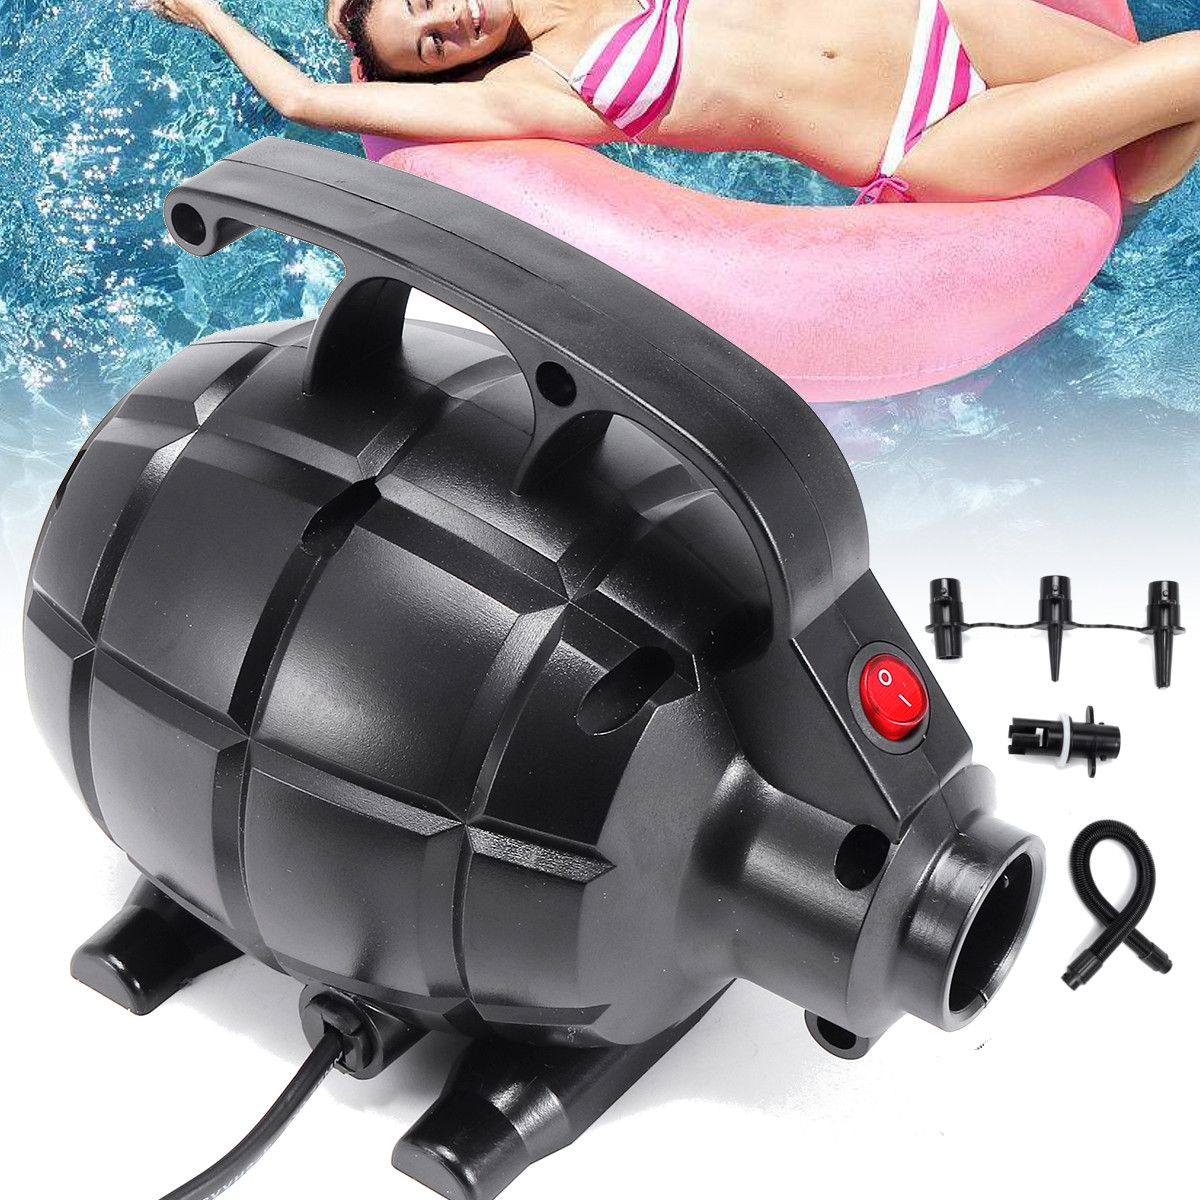 110V Electric Pump Inflatable Air Mattress Bed Pool